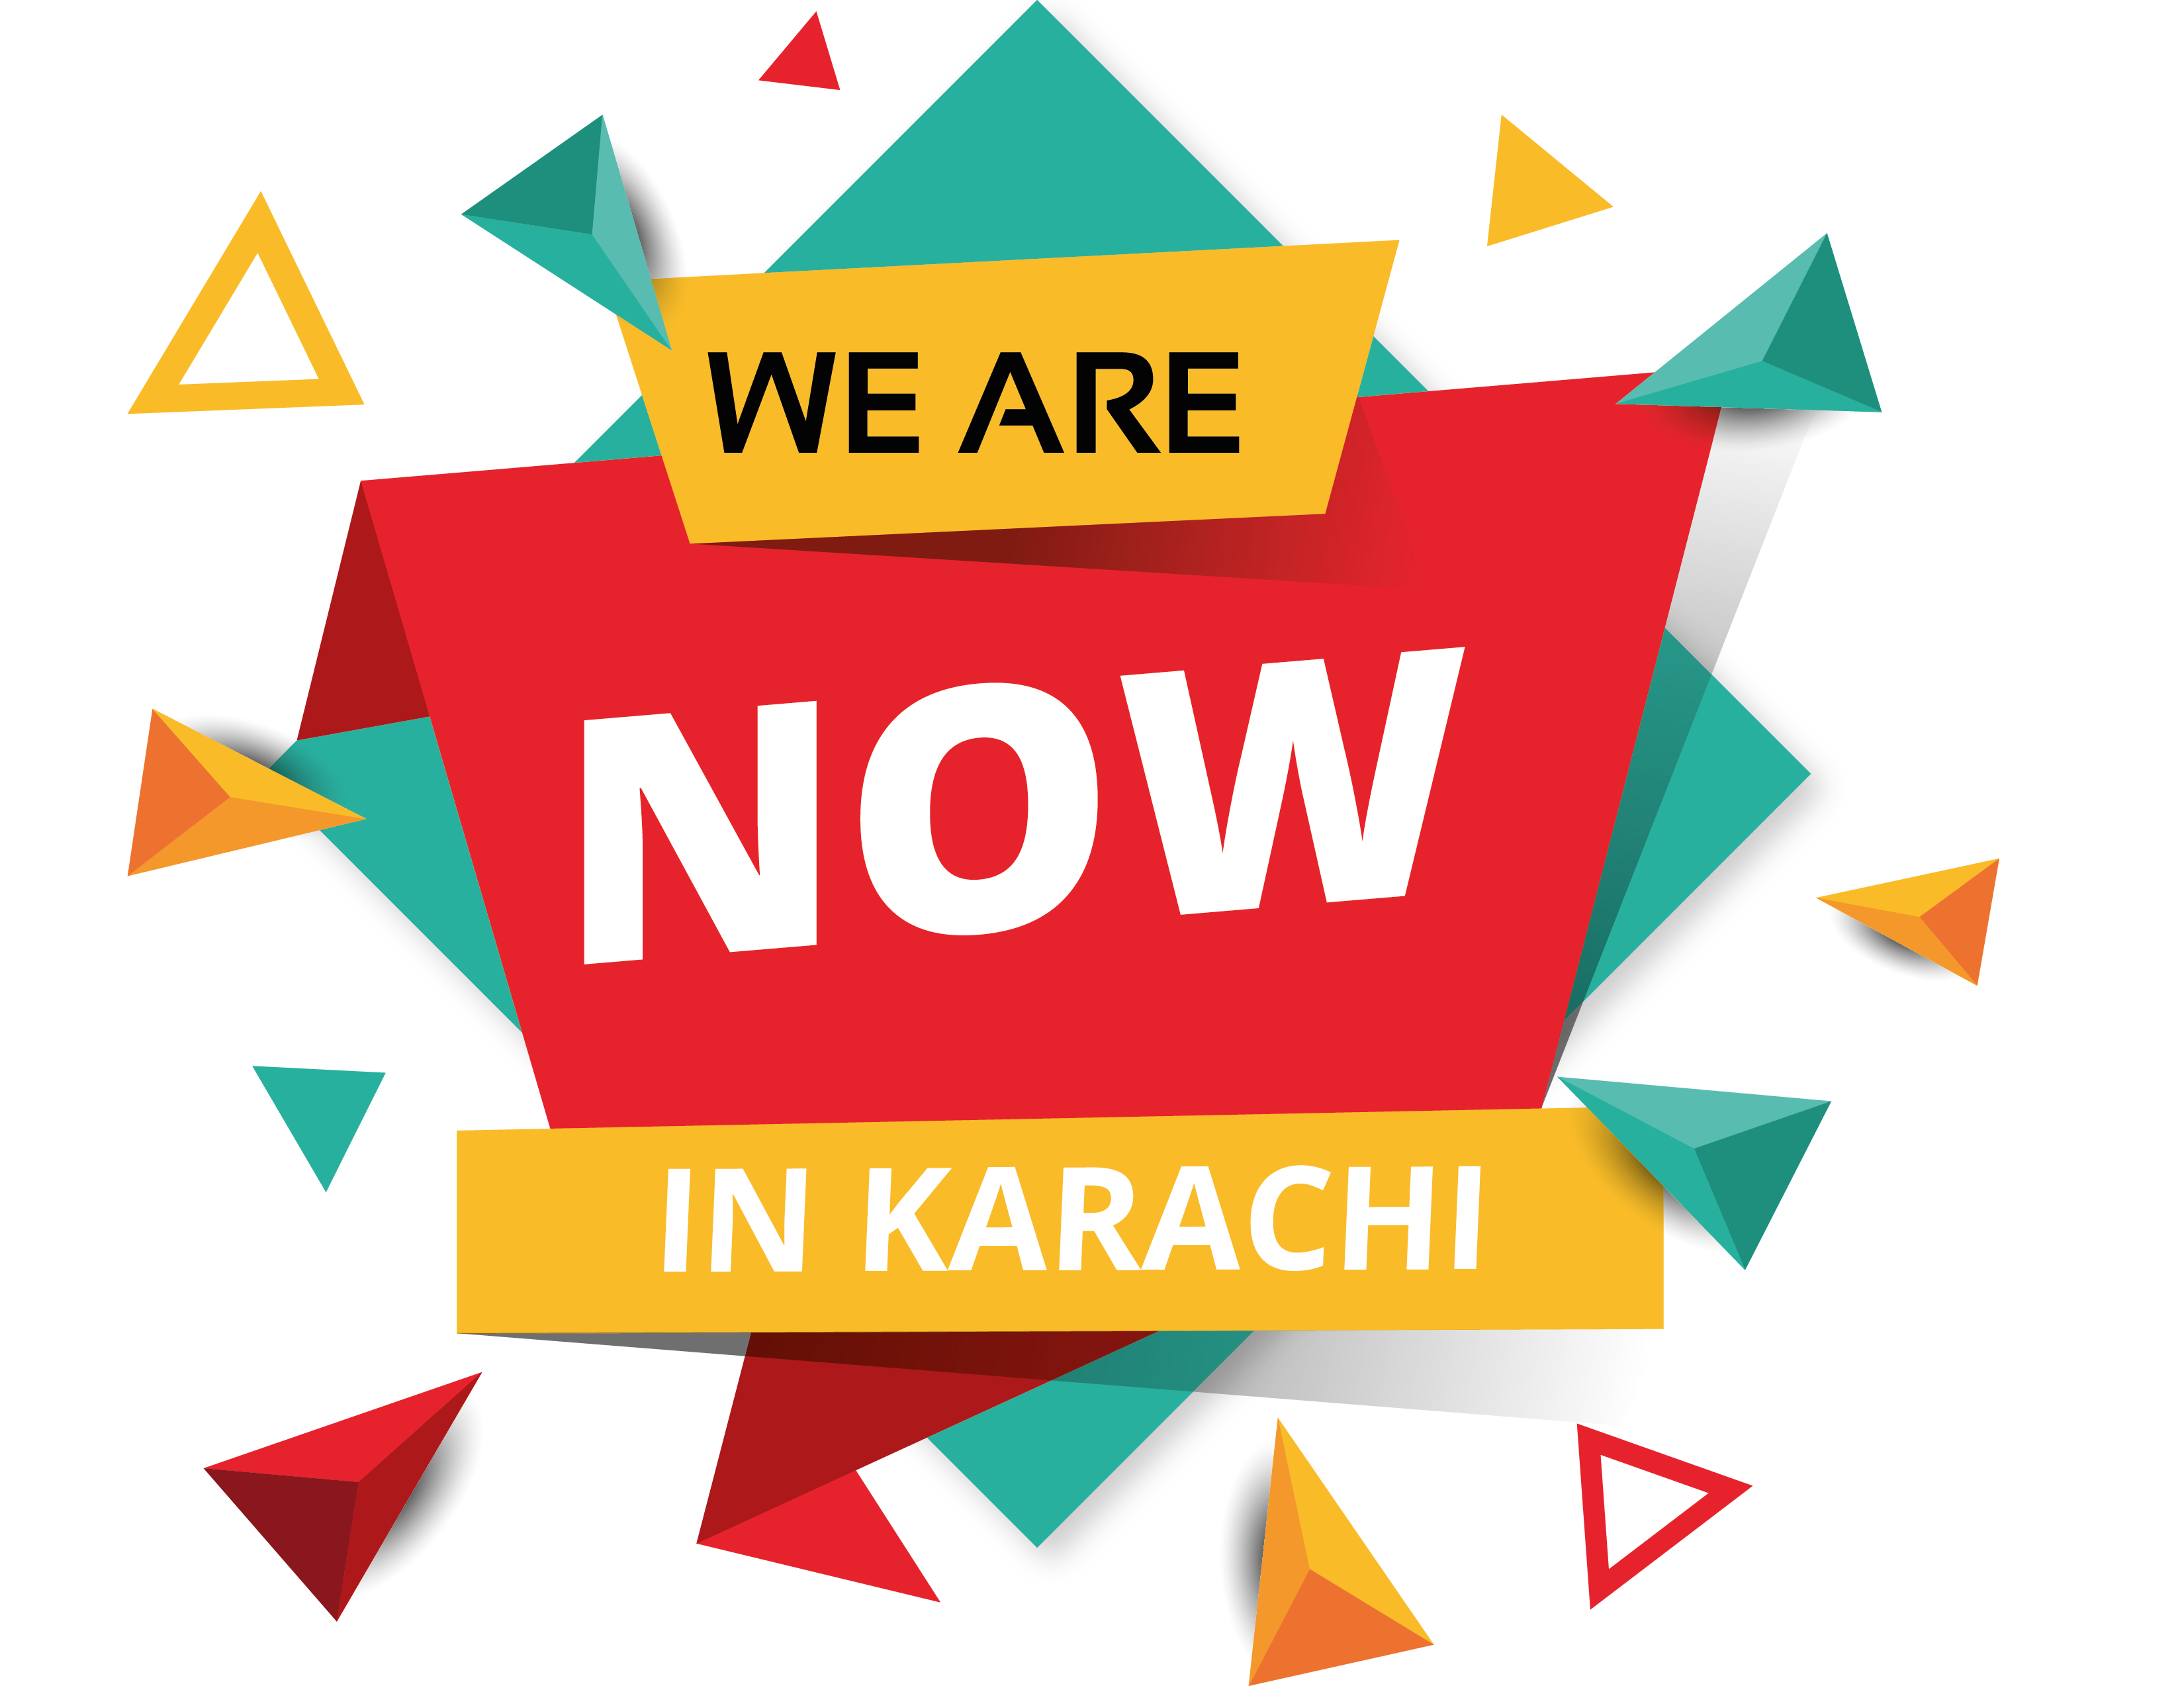 ZILLION E-LEARNING ANNOUNCES THE OPENING OF A NEW OFFICE IN KARACHI!